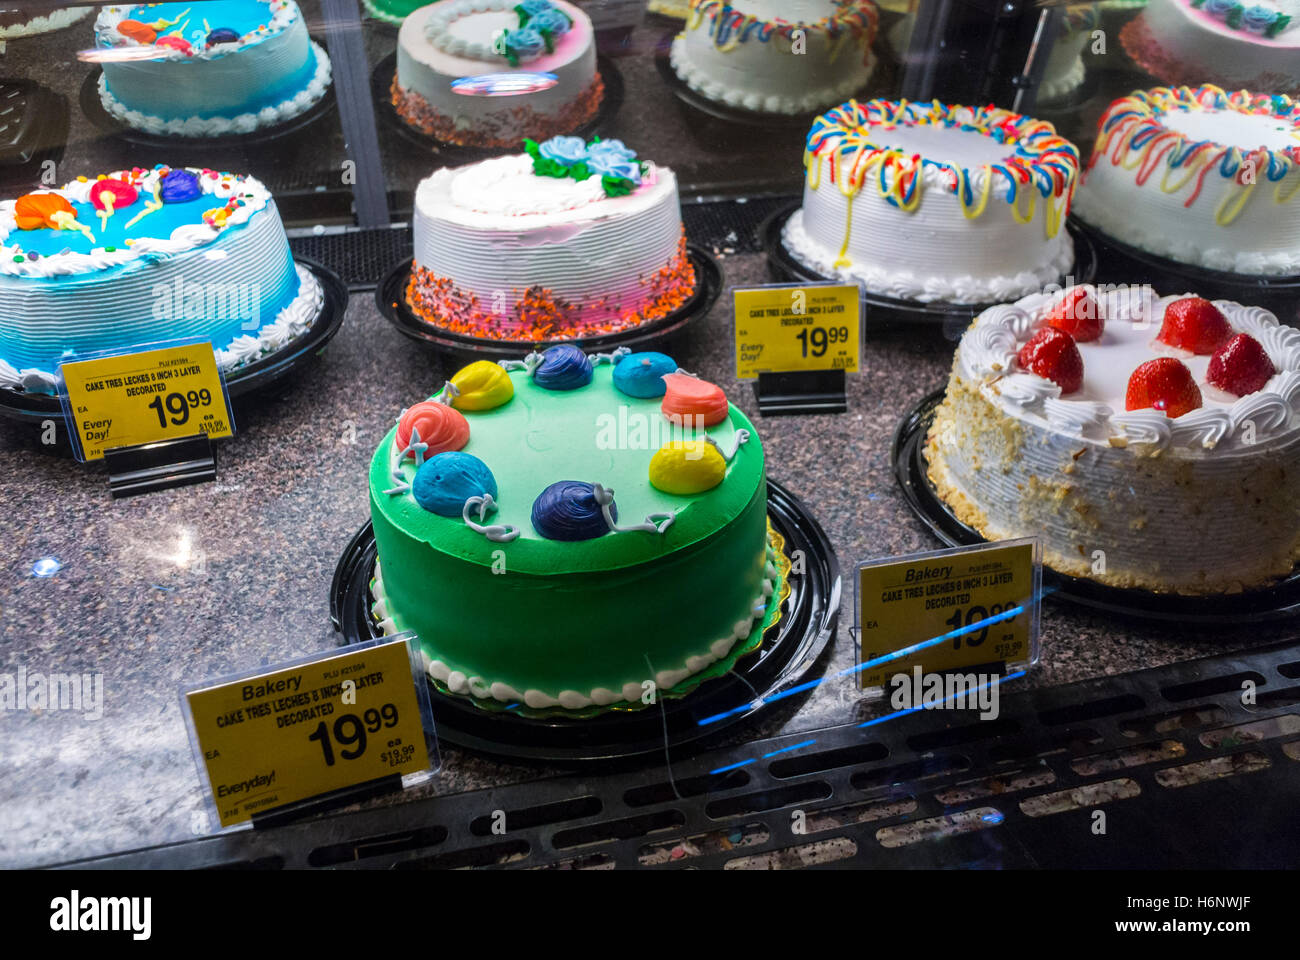 Safeway Birthday Cake Coupon New Coupons